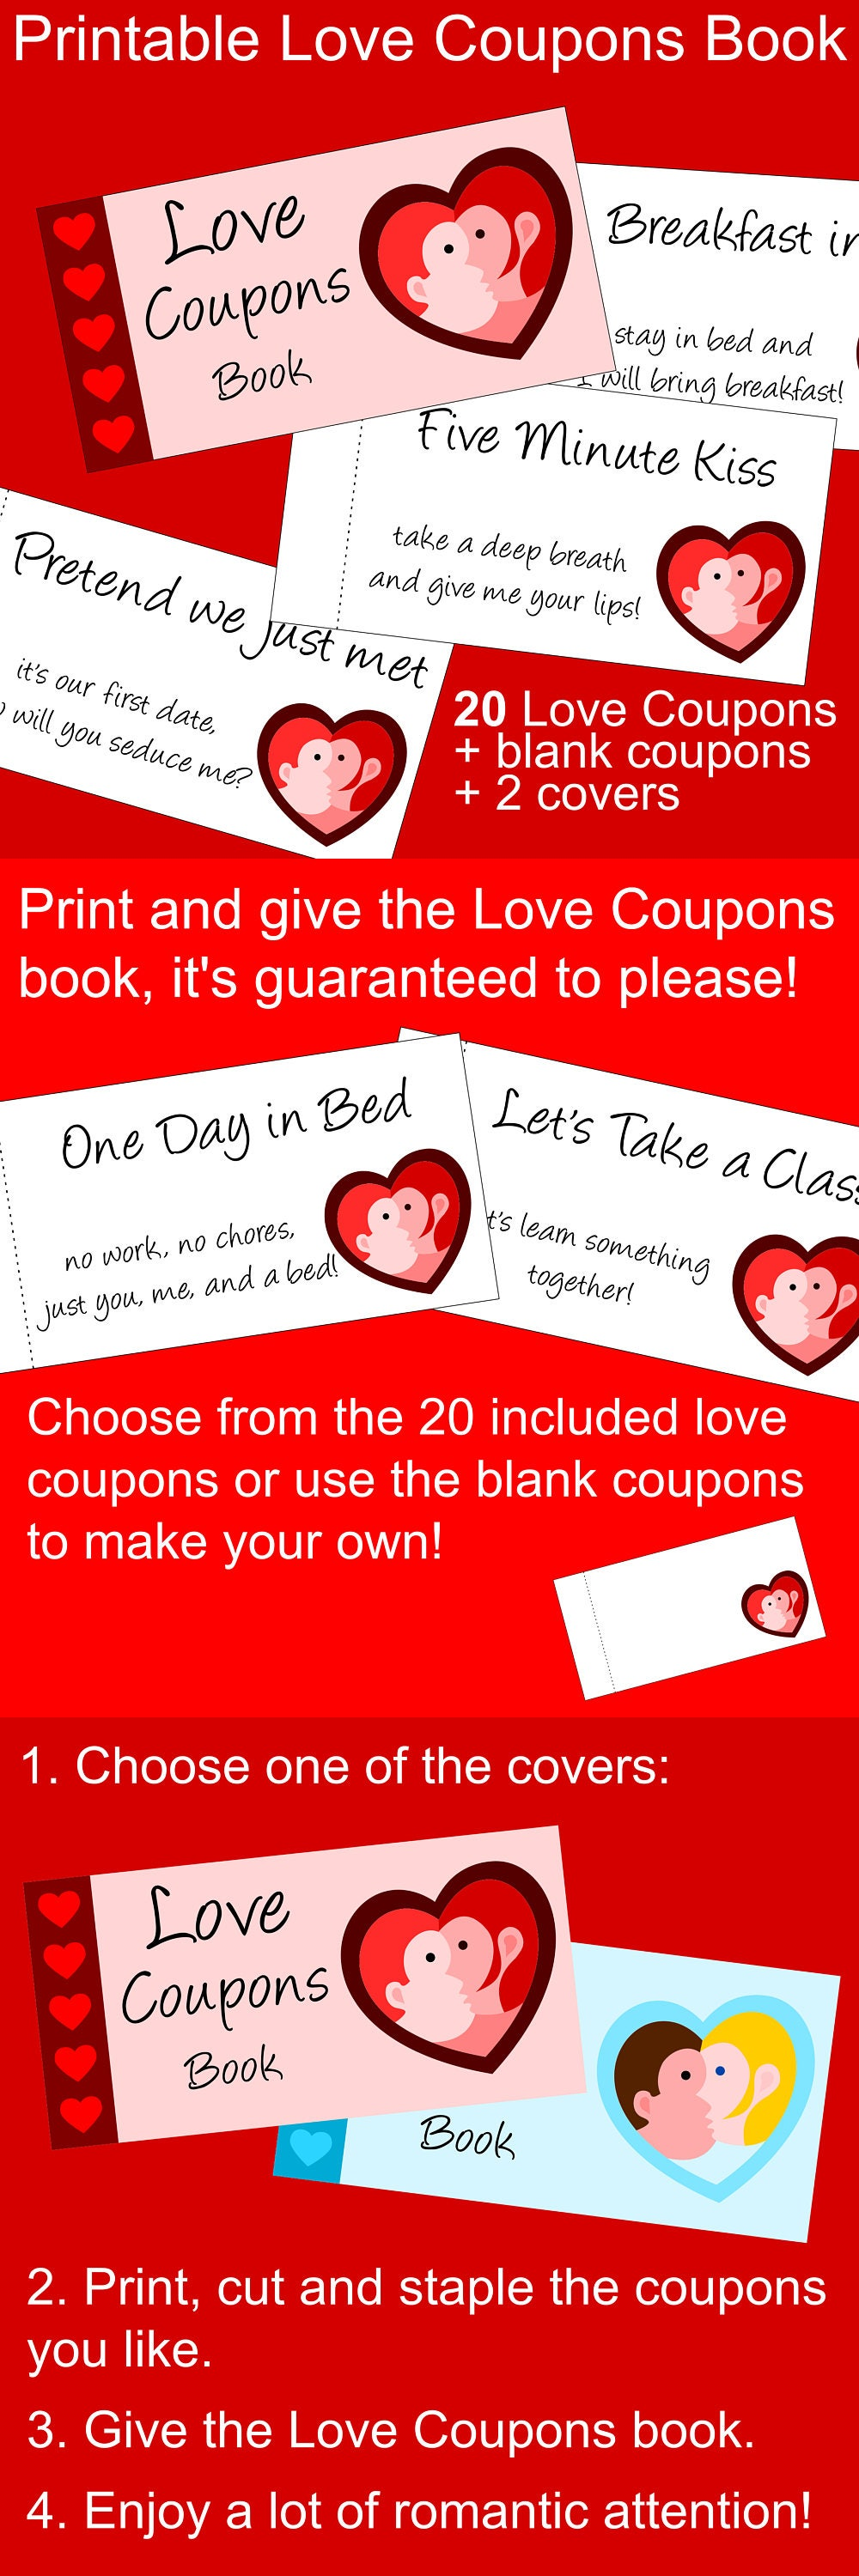 photo regarding Staple Printable Coupons known as Suitable Past Instant Valentine Present Principle for Him or Her: a